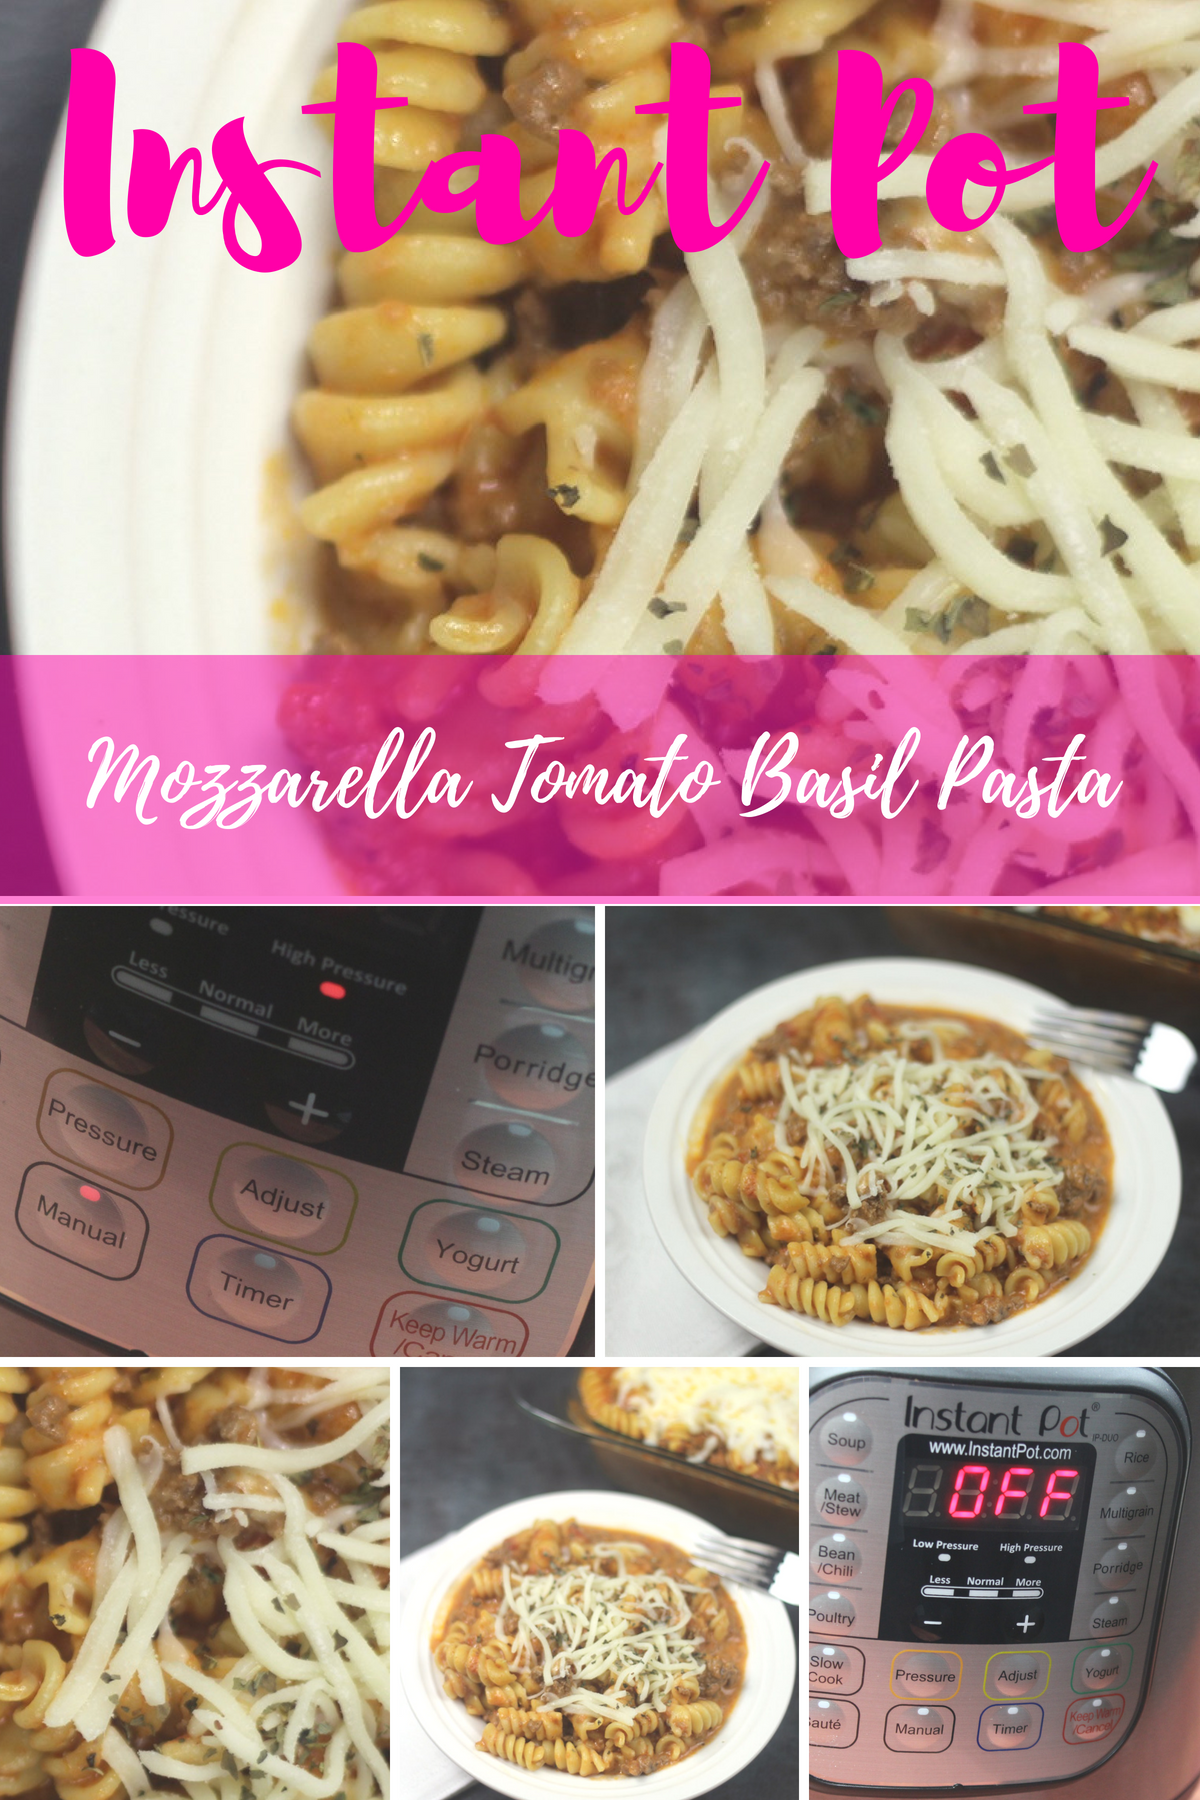 This Instant Pot Mozzarella Tomato Basil Pasta turned out great and everyone loved the flavors. This turned out to be a really easy tomato pasta recipe. If you are looking for an awesome Instant Pot pasta recipe, this is it! #tomatobasil #instantpot #mozzarella #pastarecipe #easyrecipe